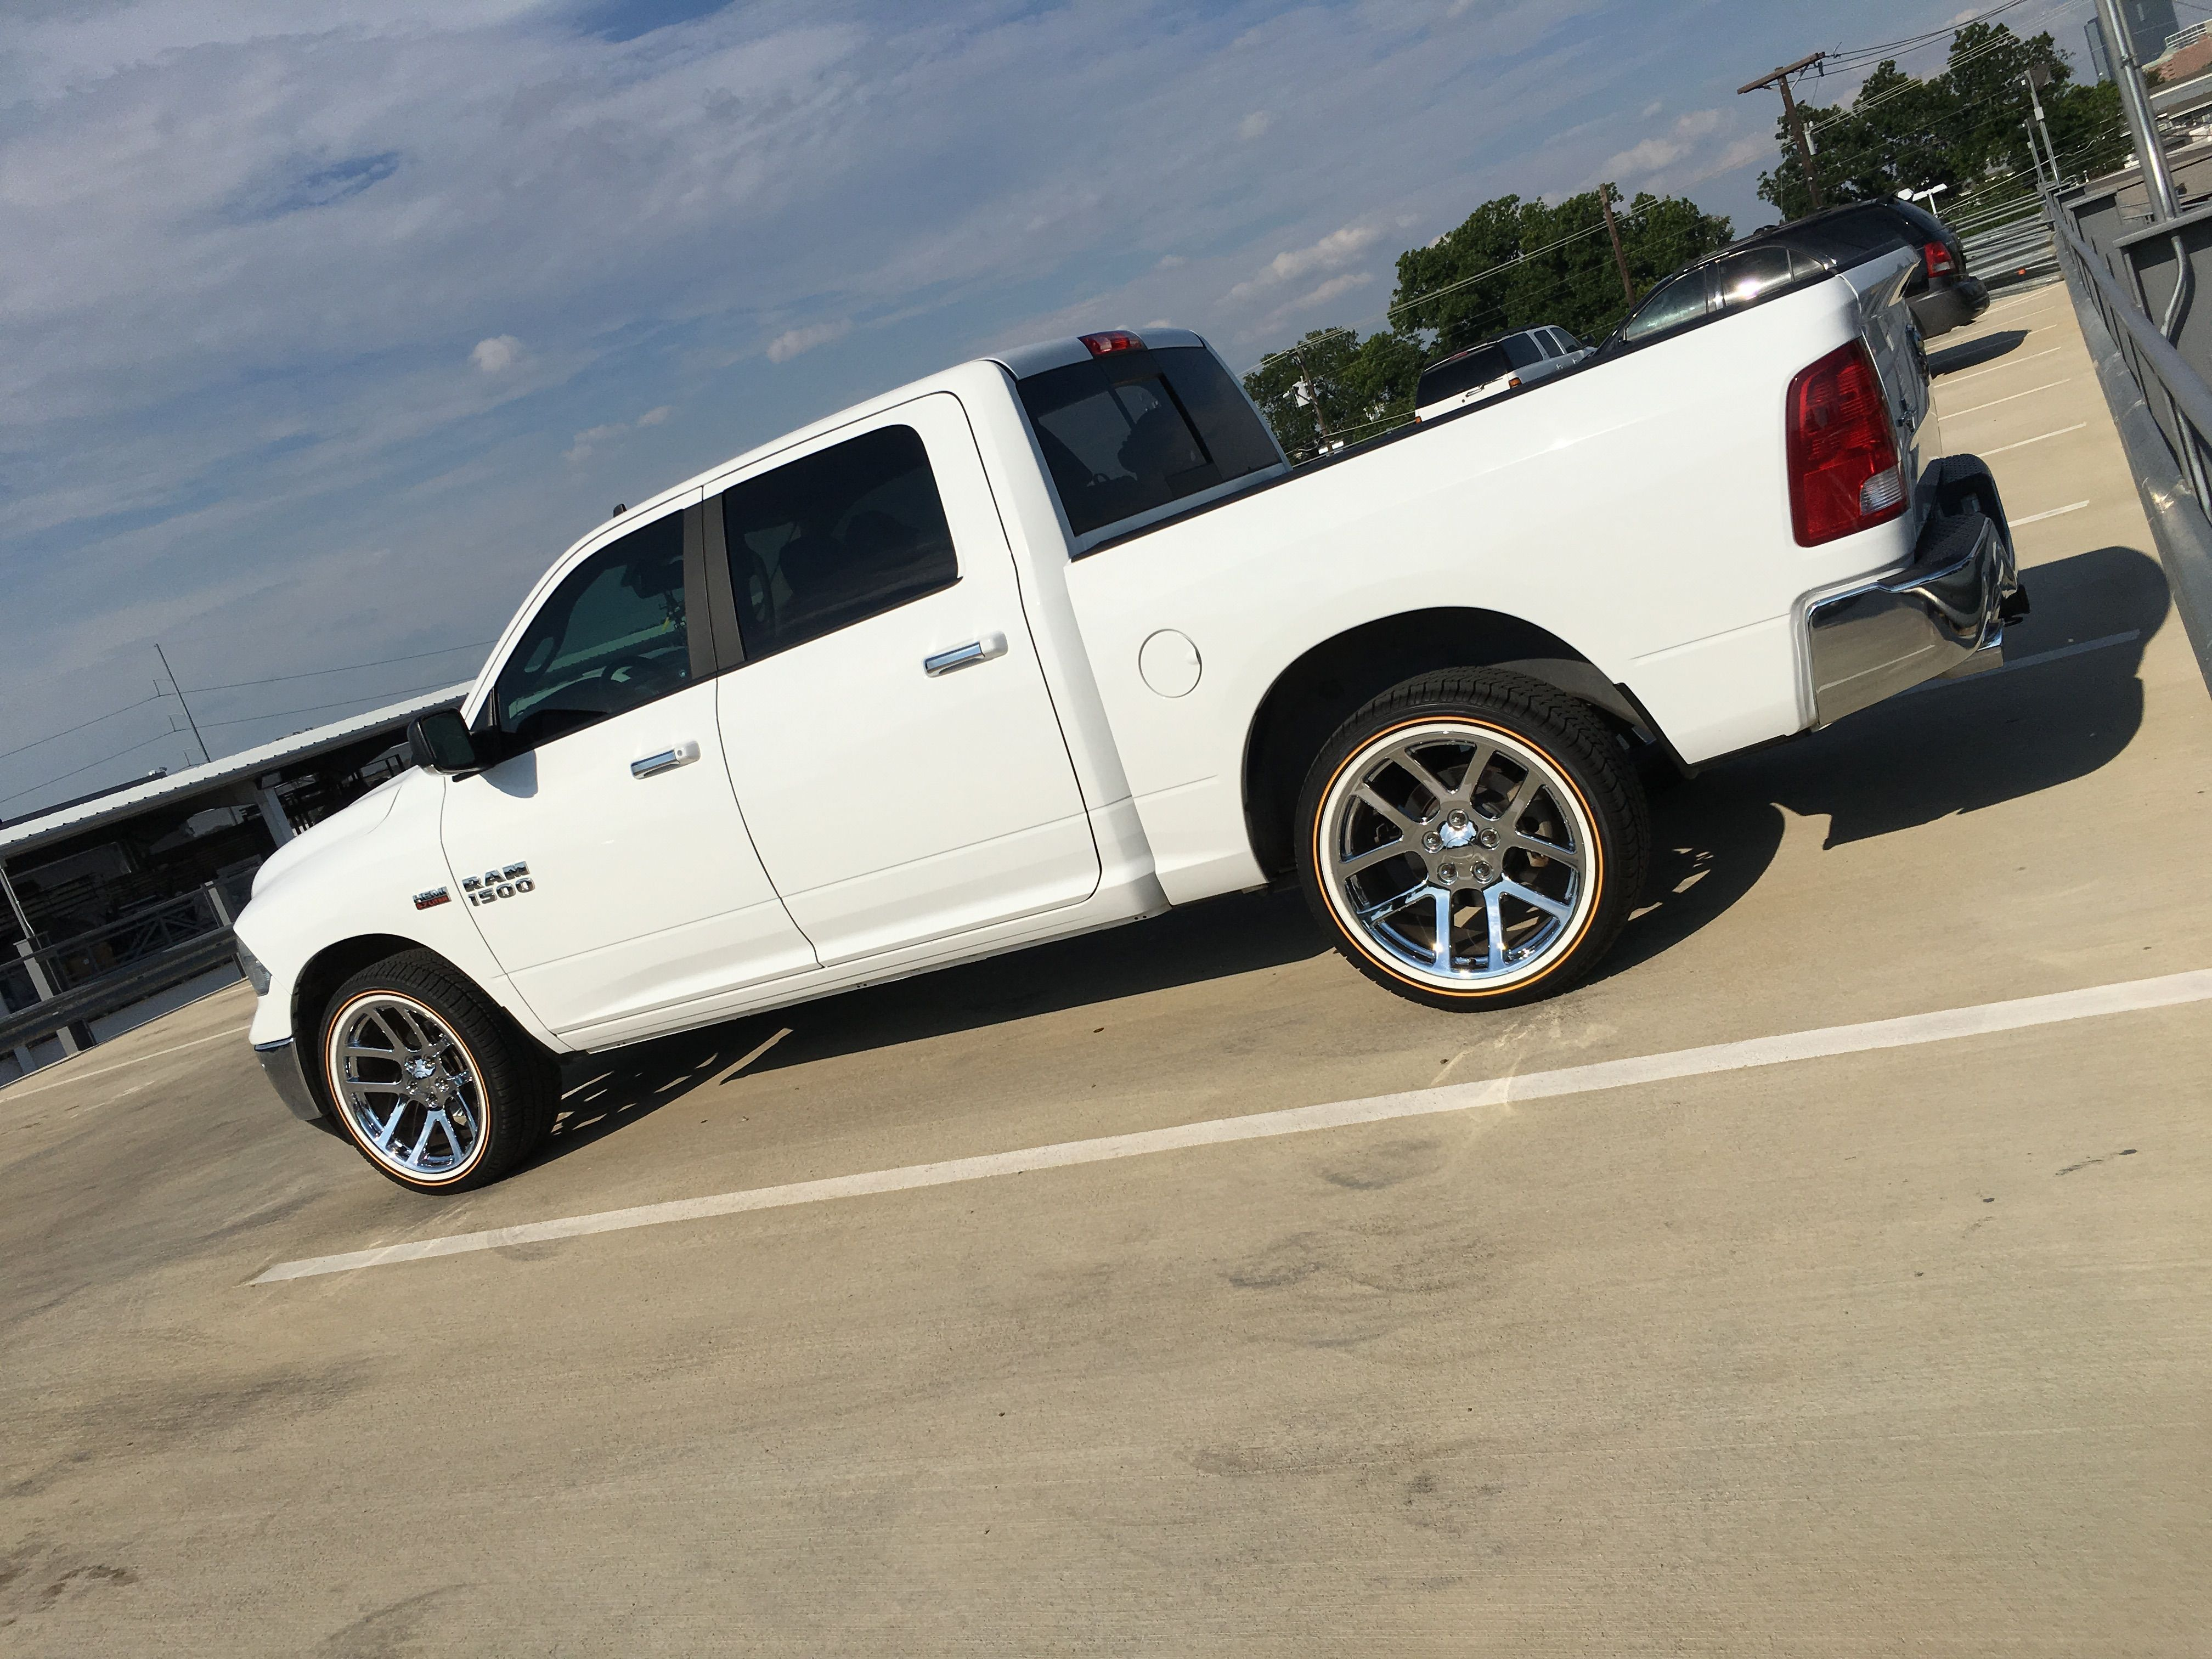 2016 Dodge Ram 1500 On 22inch Vogue Tyres Making Other Trucks